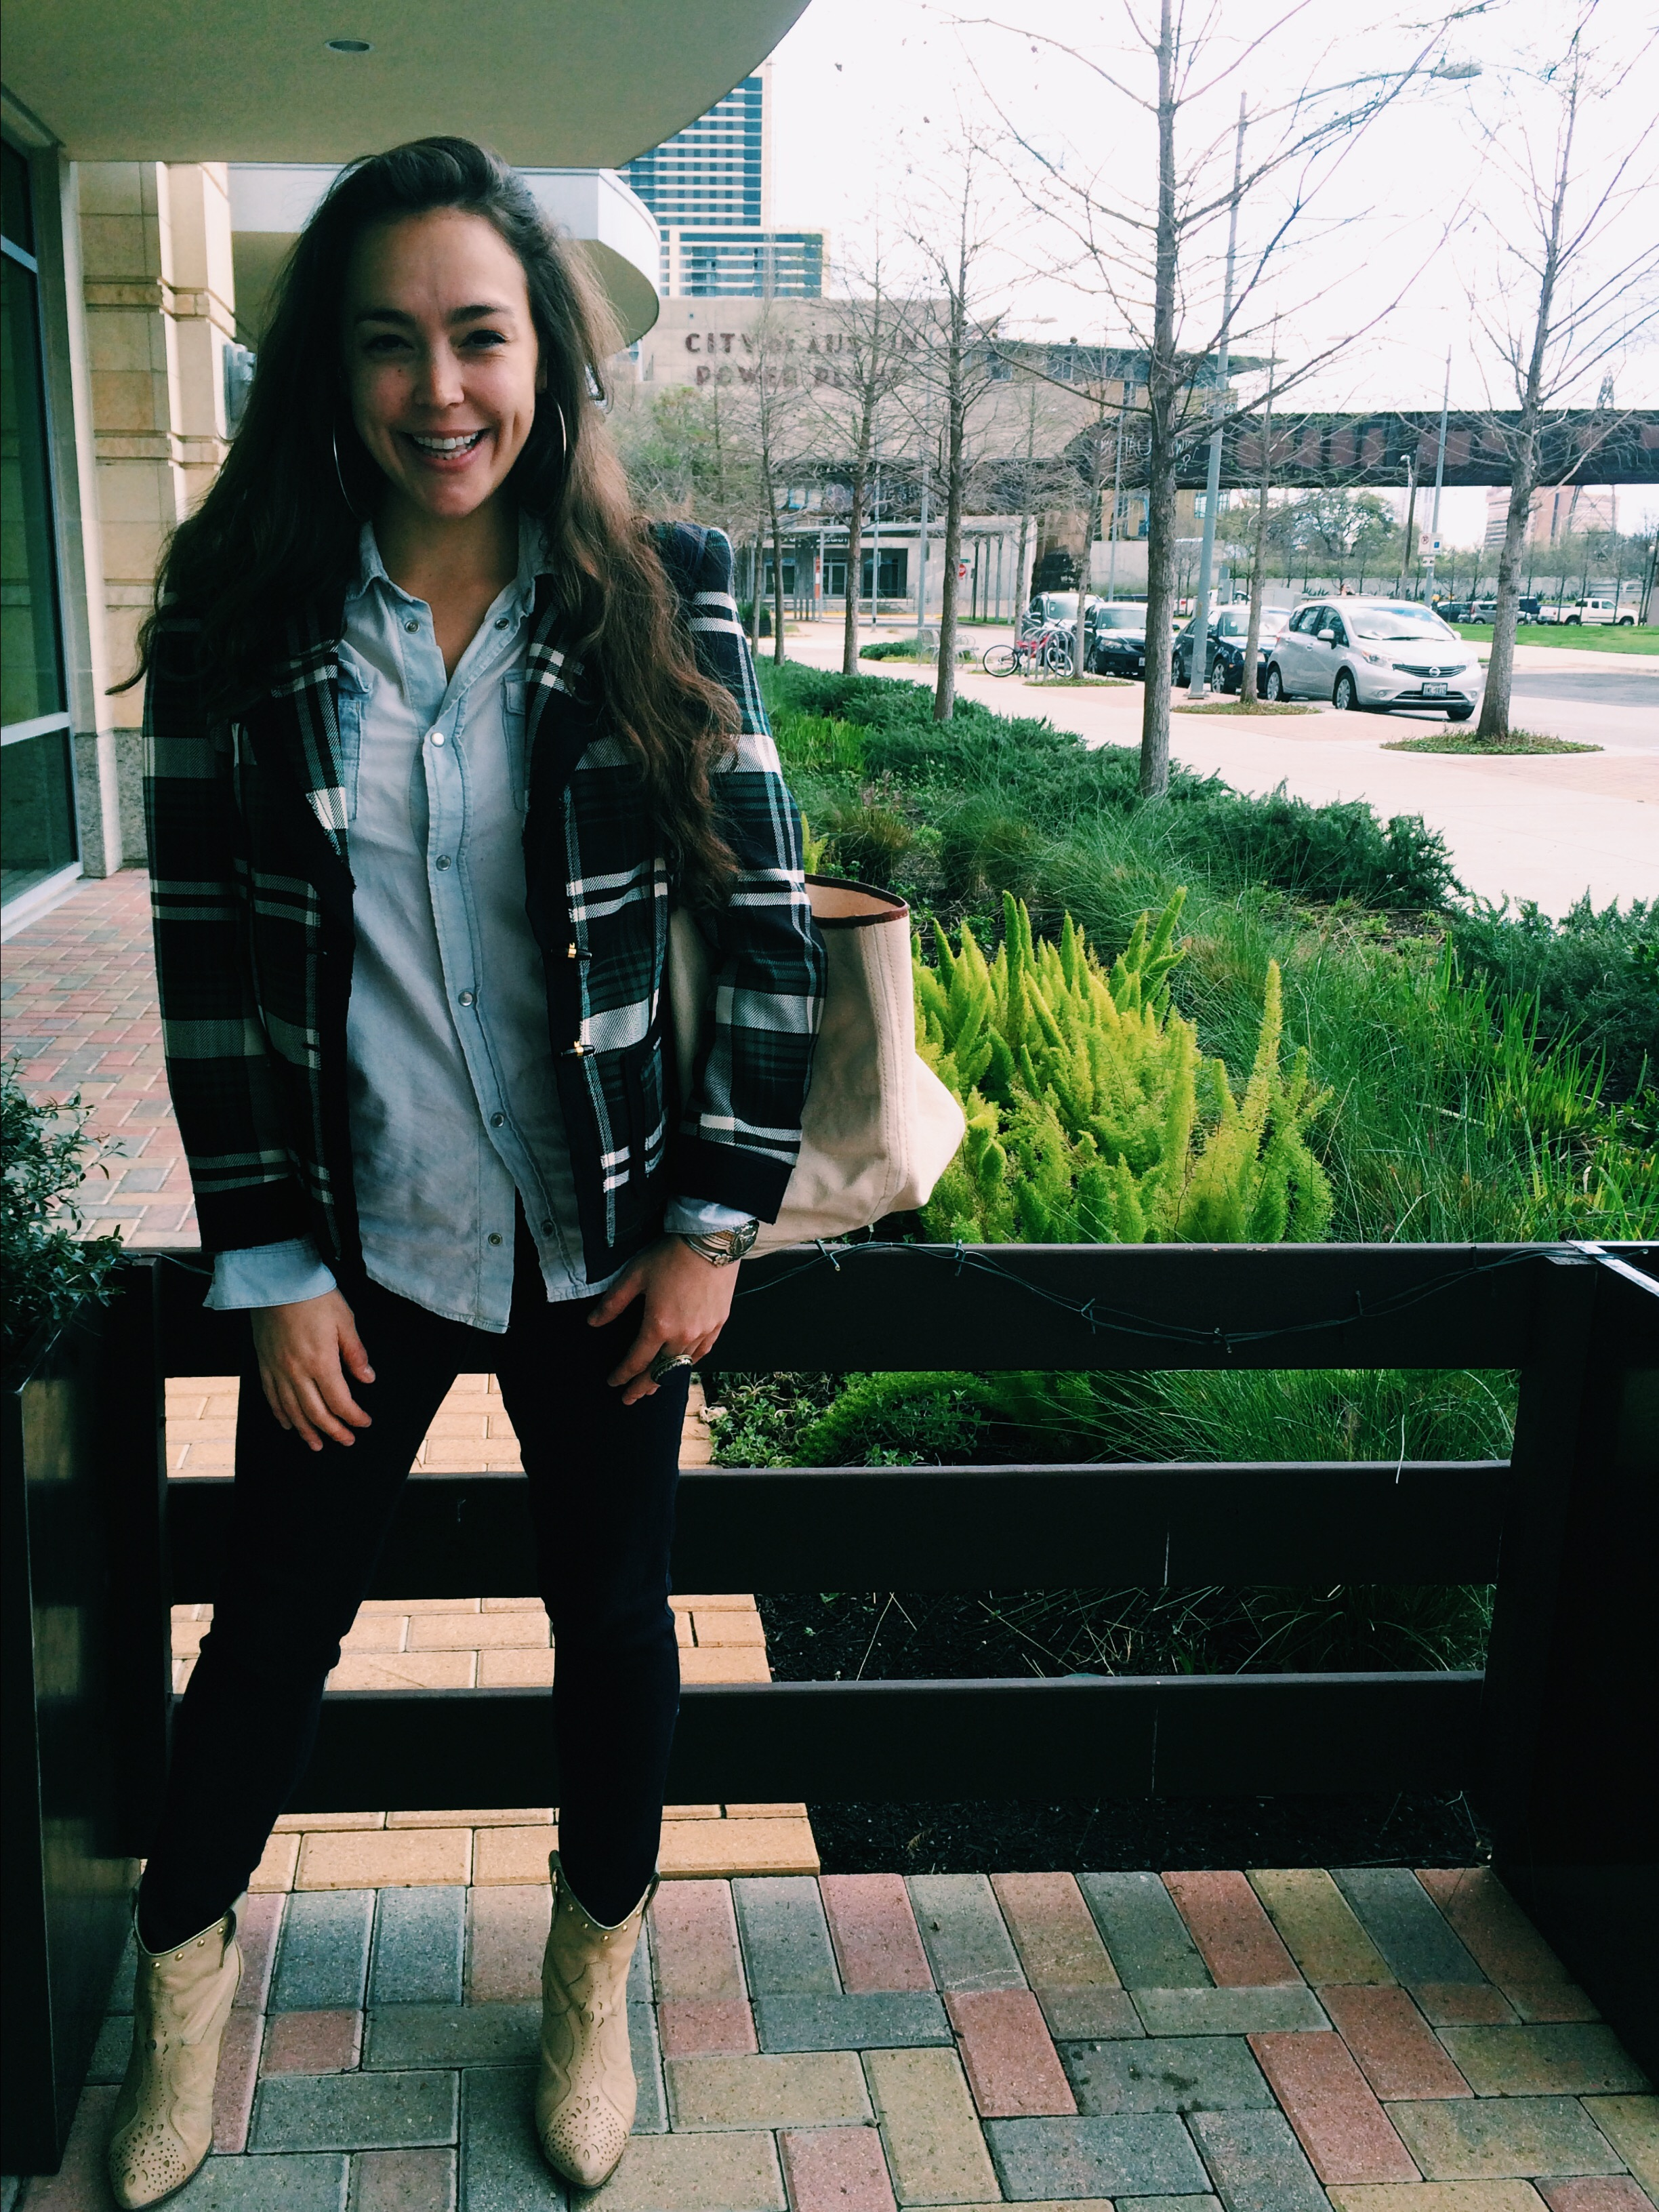 Raquel Greer Gordian models a plaid blazer, chambray button-up, jeans, hoops, and some studded tan booties for SXSW.